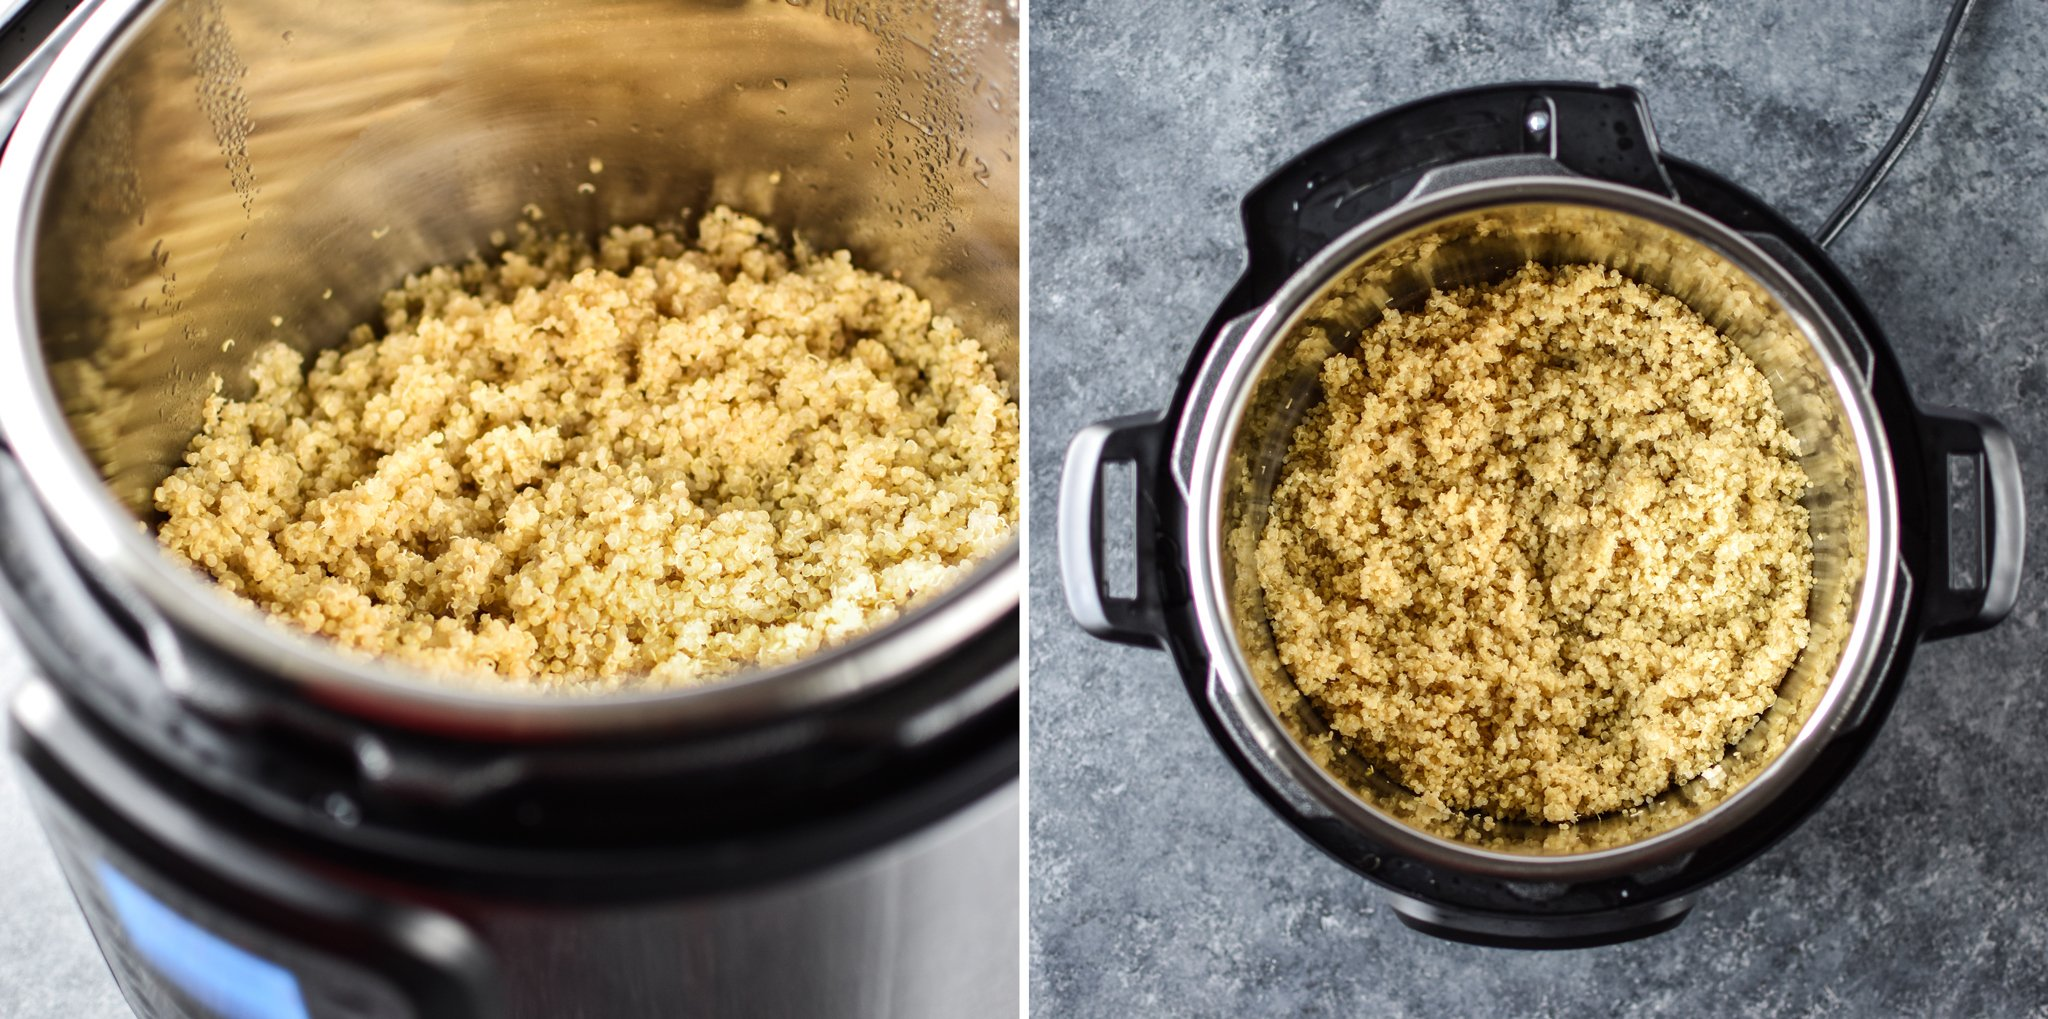 Cooked quinoa in the Instant Pot with two views - one seen from straight above and one from a side angle.